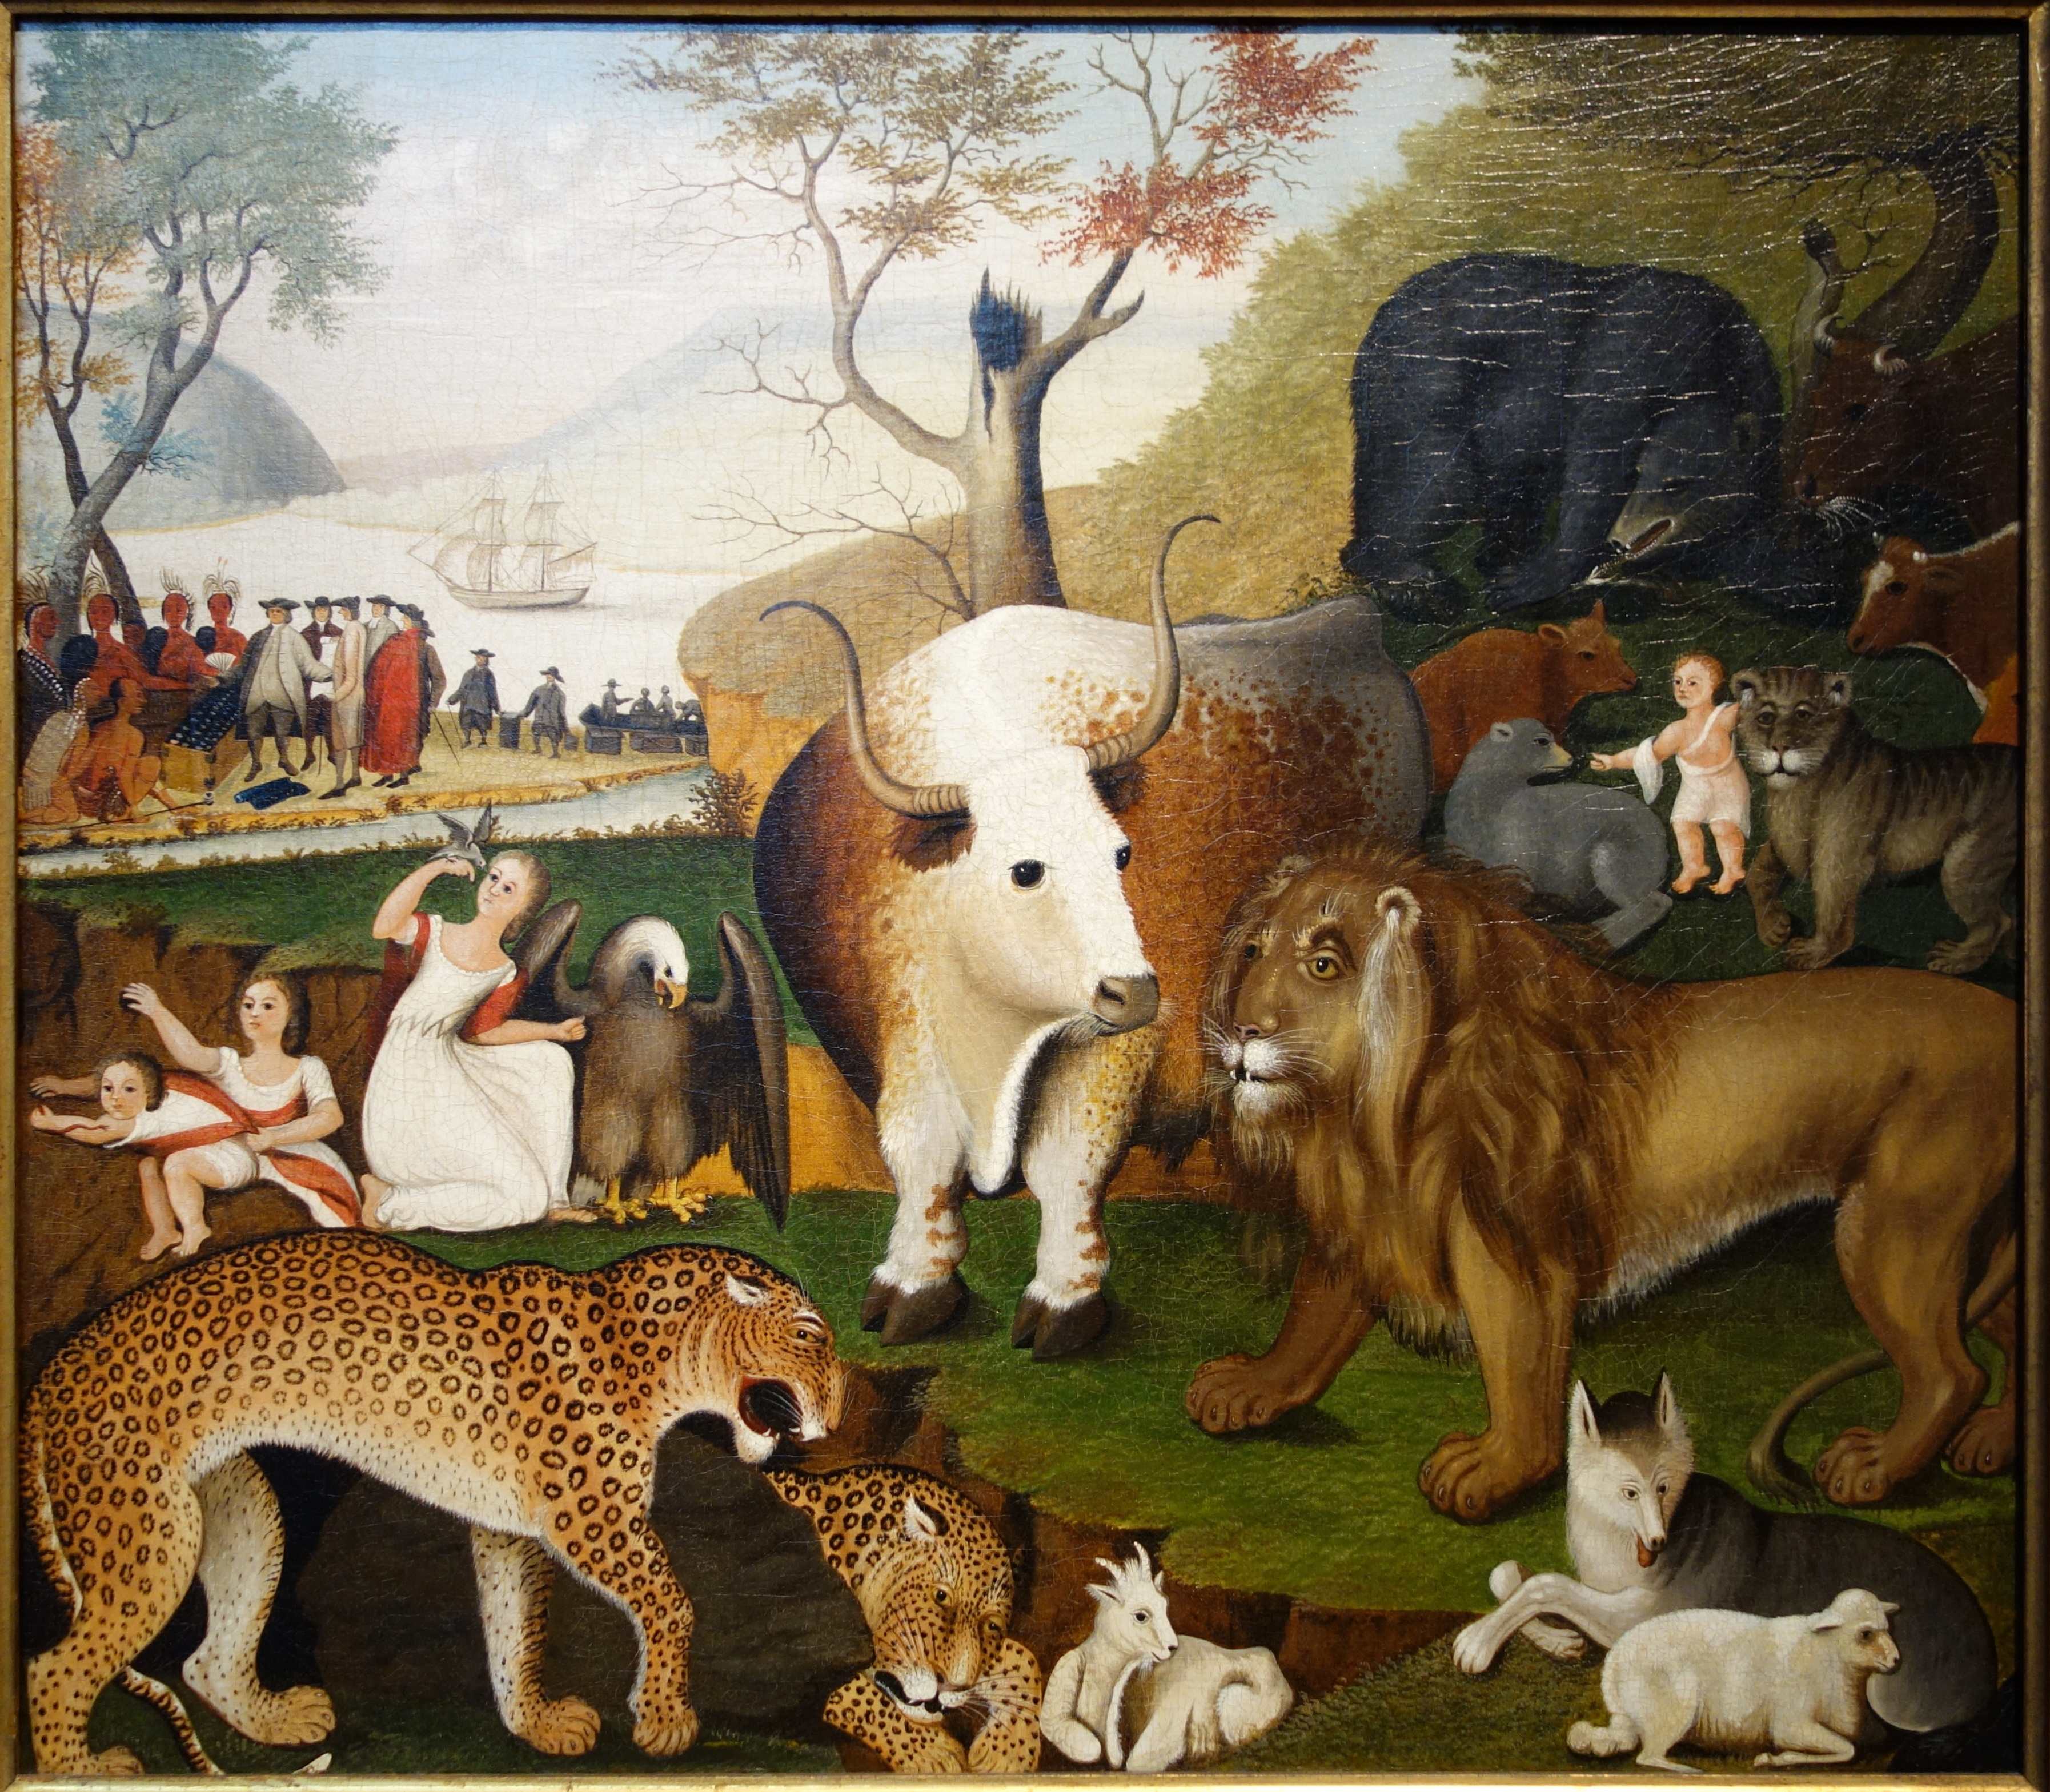 Canvas Artwork File:the Peaceable Kingdom By Edward Hicks, C. 1846, Oil